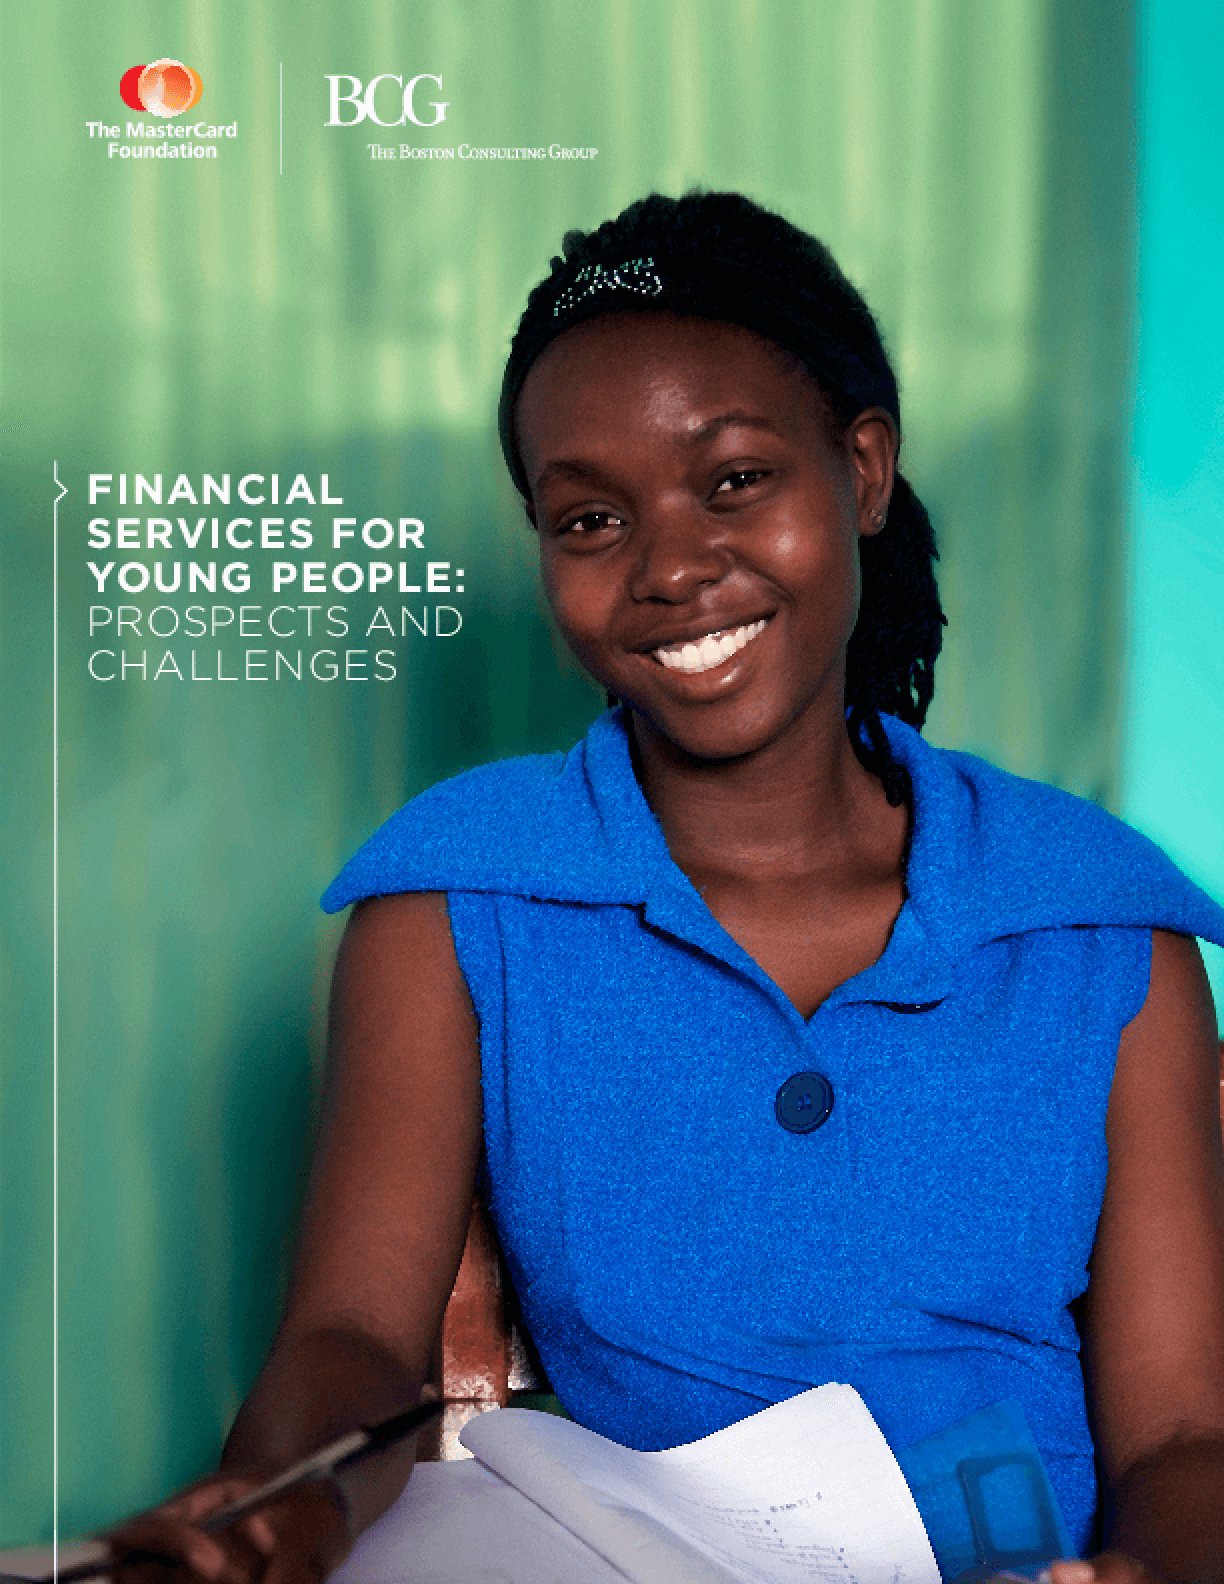 Financial Services for Young People: Prospects and Challenges